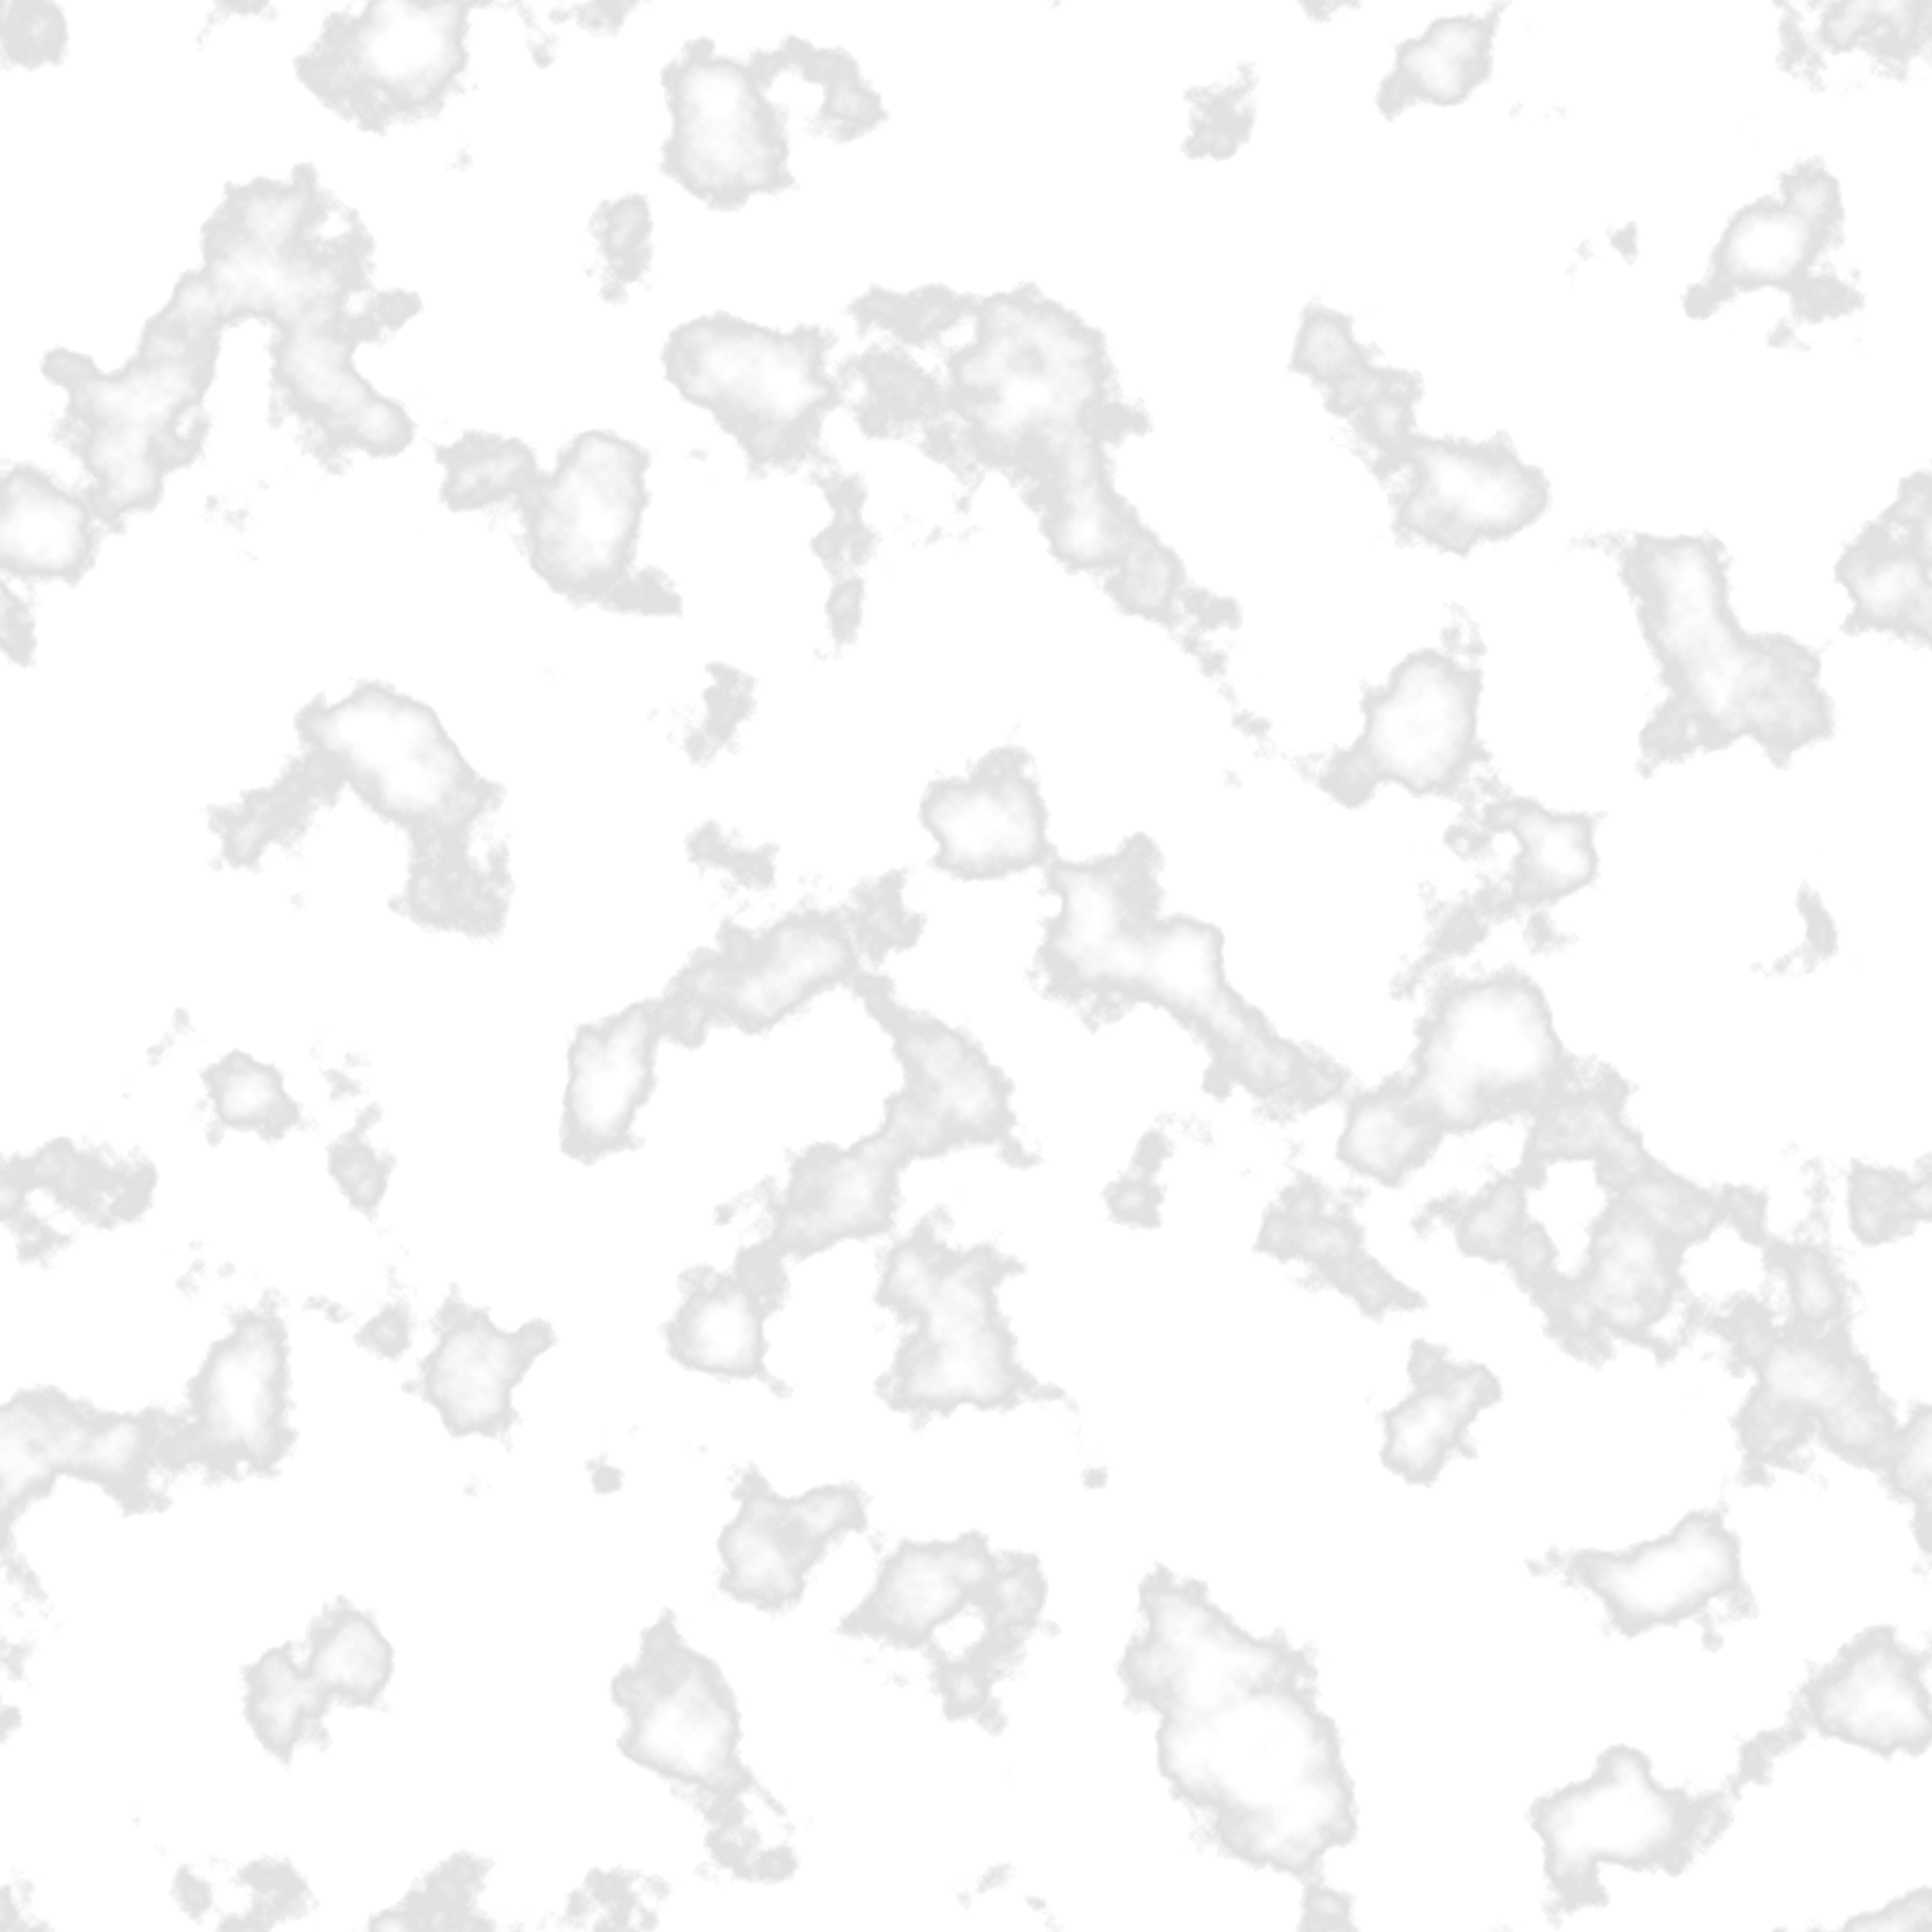 Minecraft clouds png. Mc can t handle